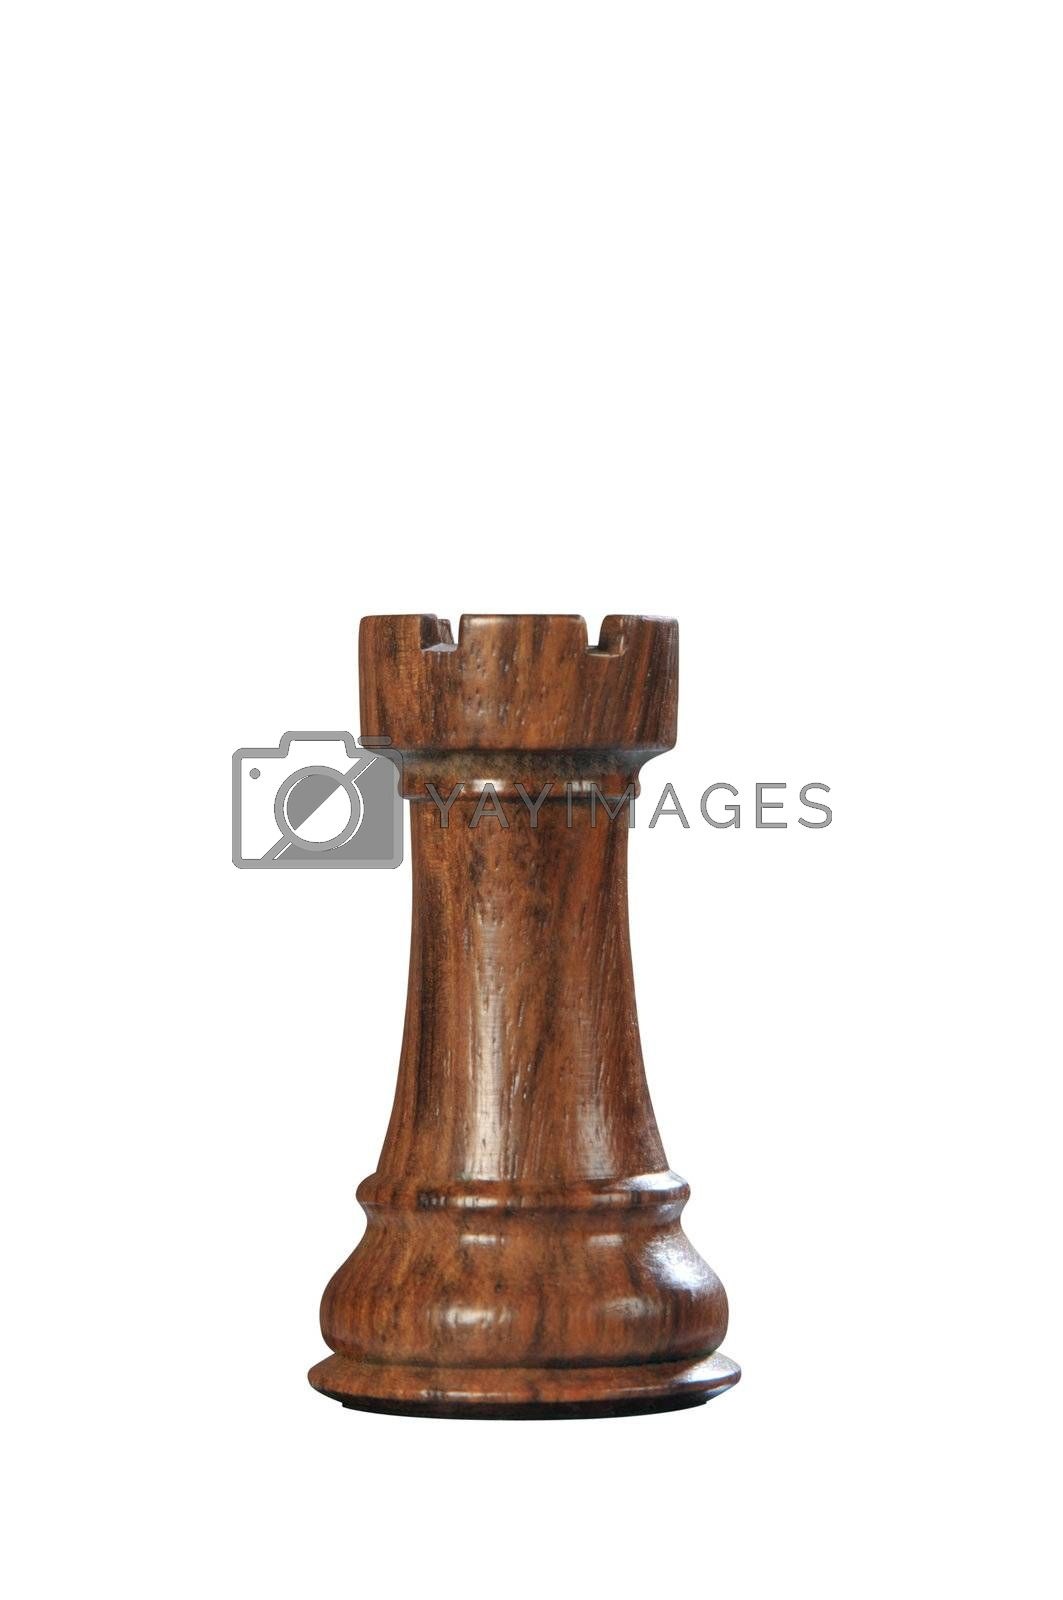 Black (Brown) wooden tower - one of 12 different chess pieces.